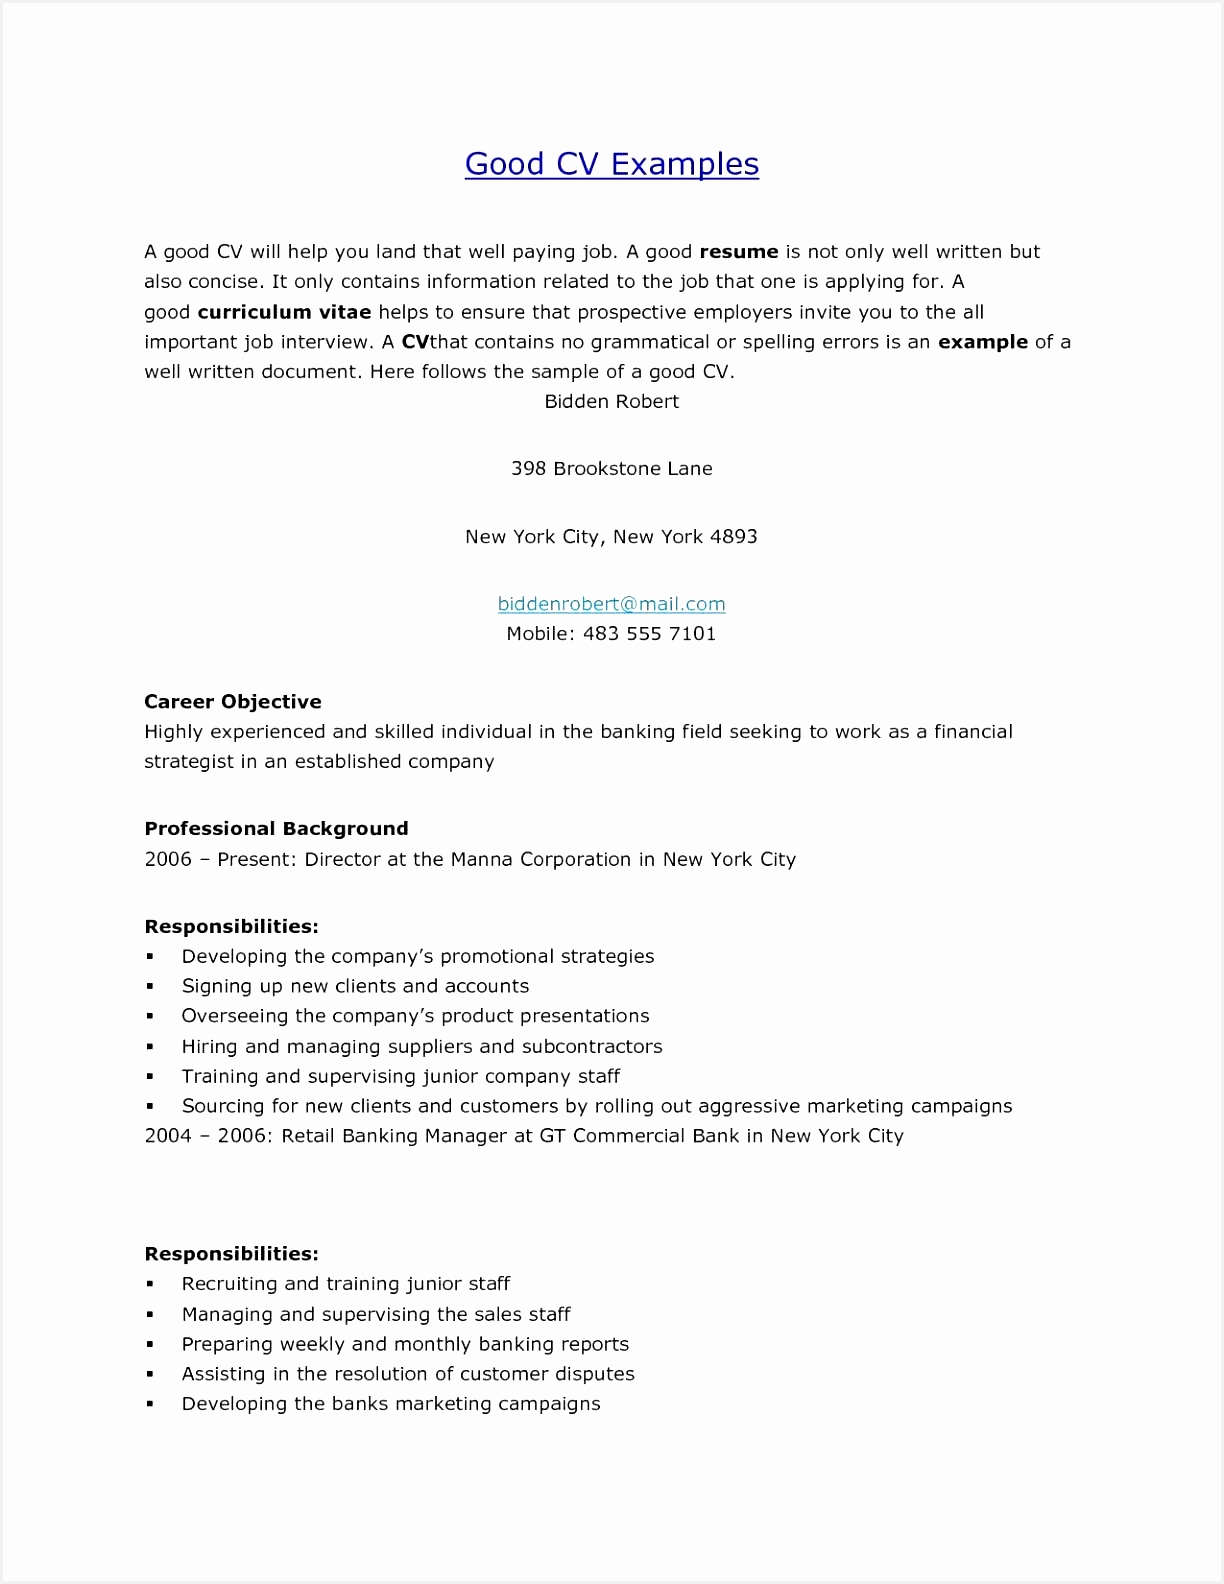 Good Examples Resumes New Cover Letter Examples for Resume Marketing Inspirationa What Means Good15841224